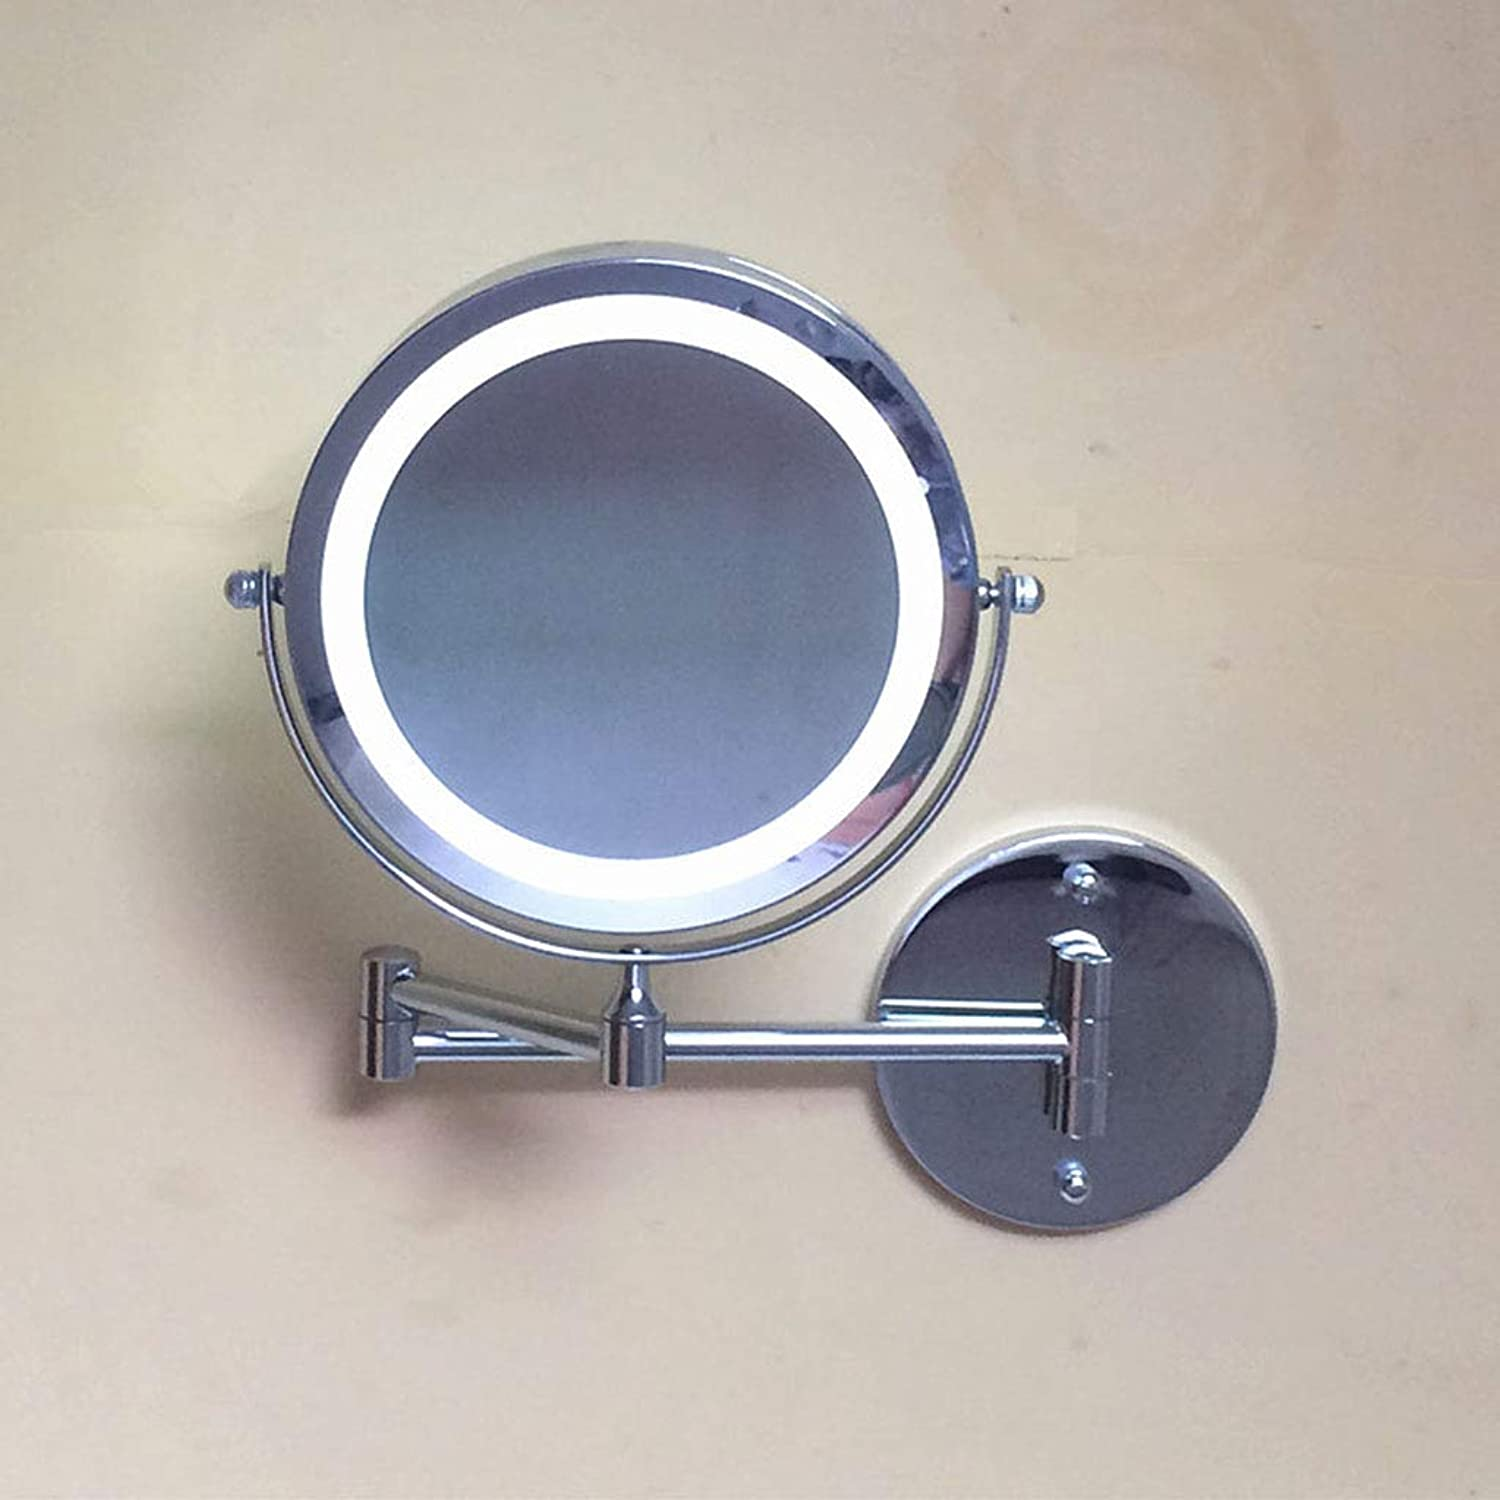 Makeup Mirror Bathroom Double-Sided Wall Mirror with Light Fold Telescopic Dressing Mirror Bathroom Mirror Hotel Bathroom redating Mirror,A